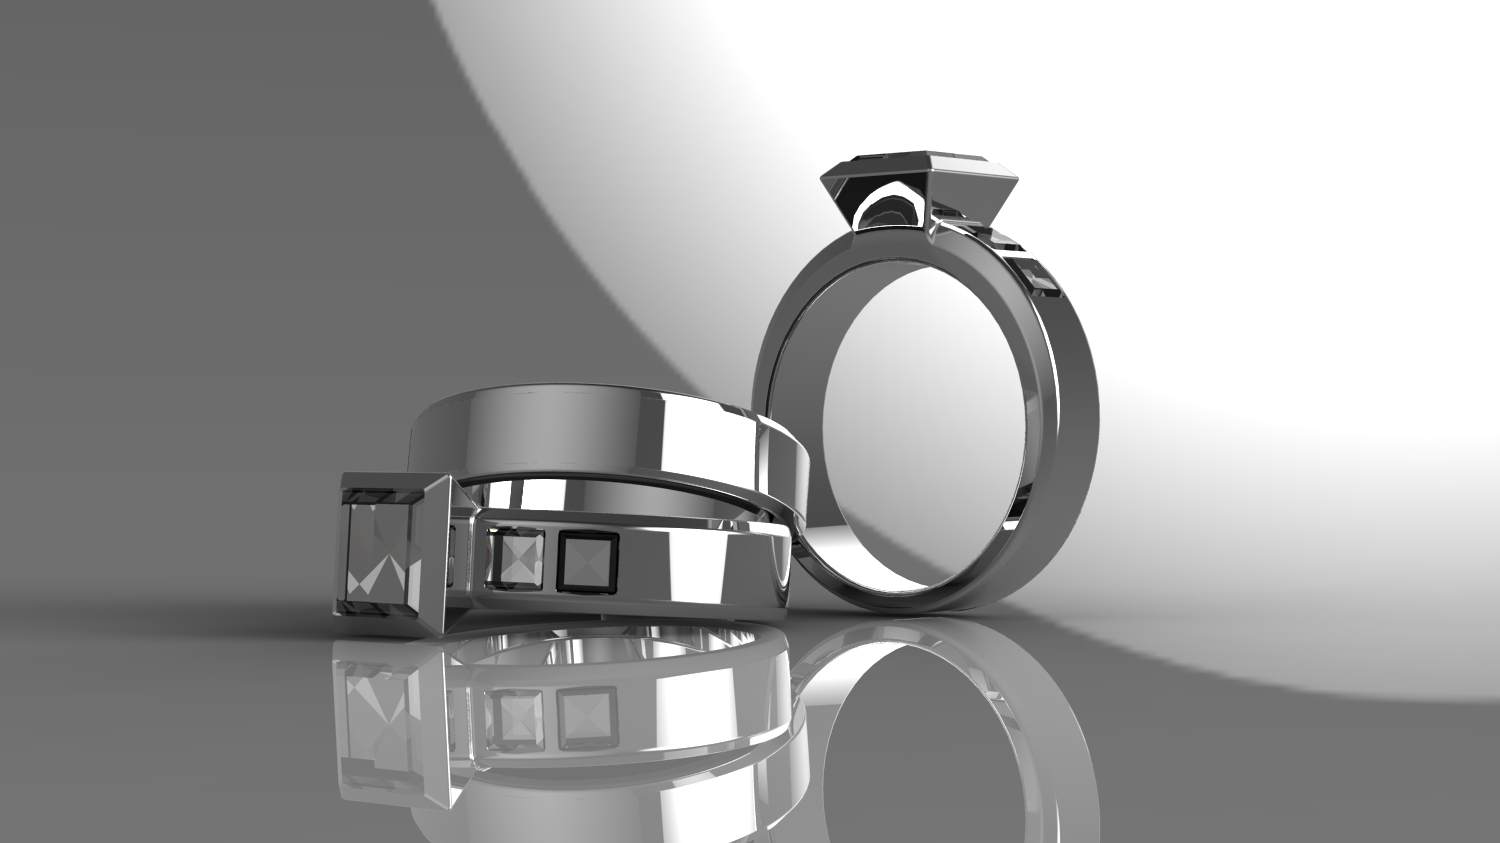 Engagement Ring Product Design